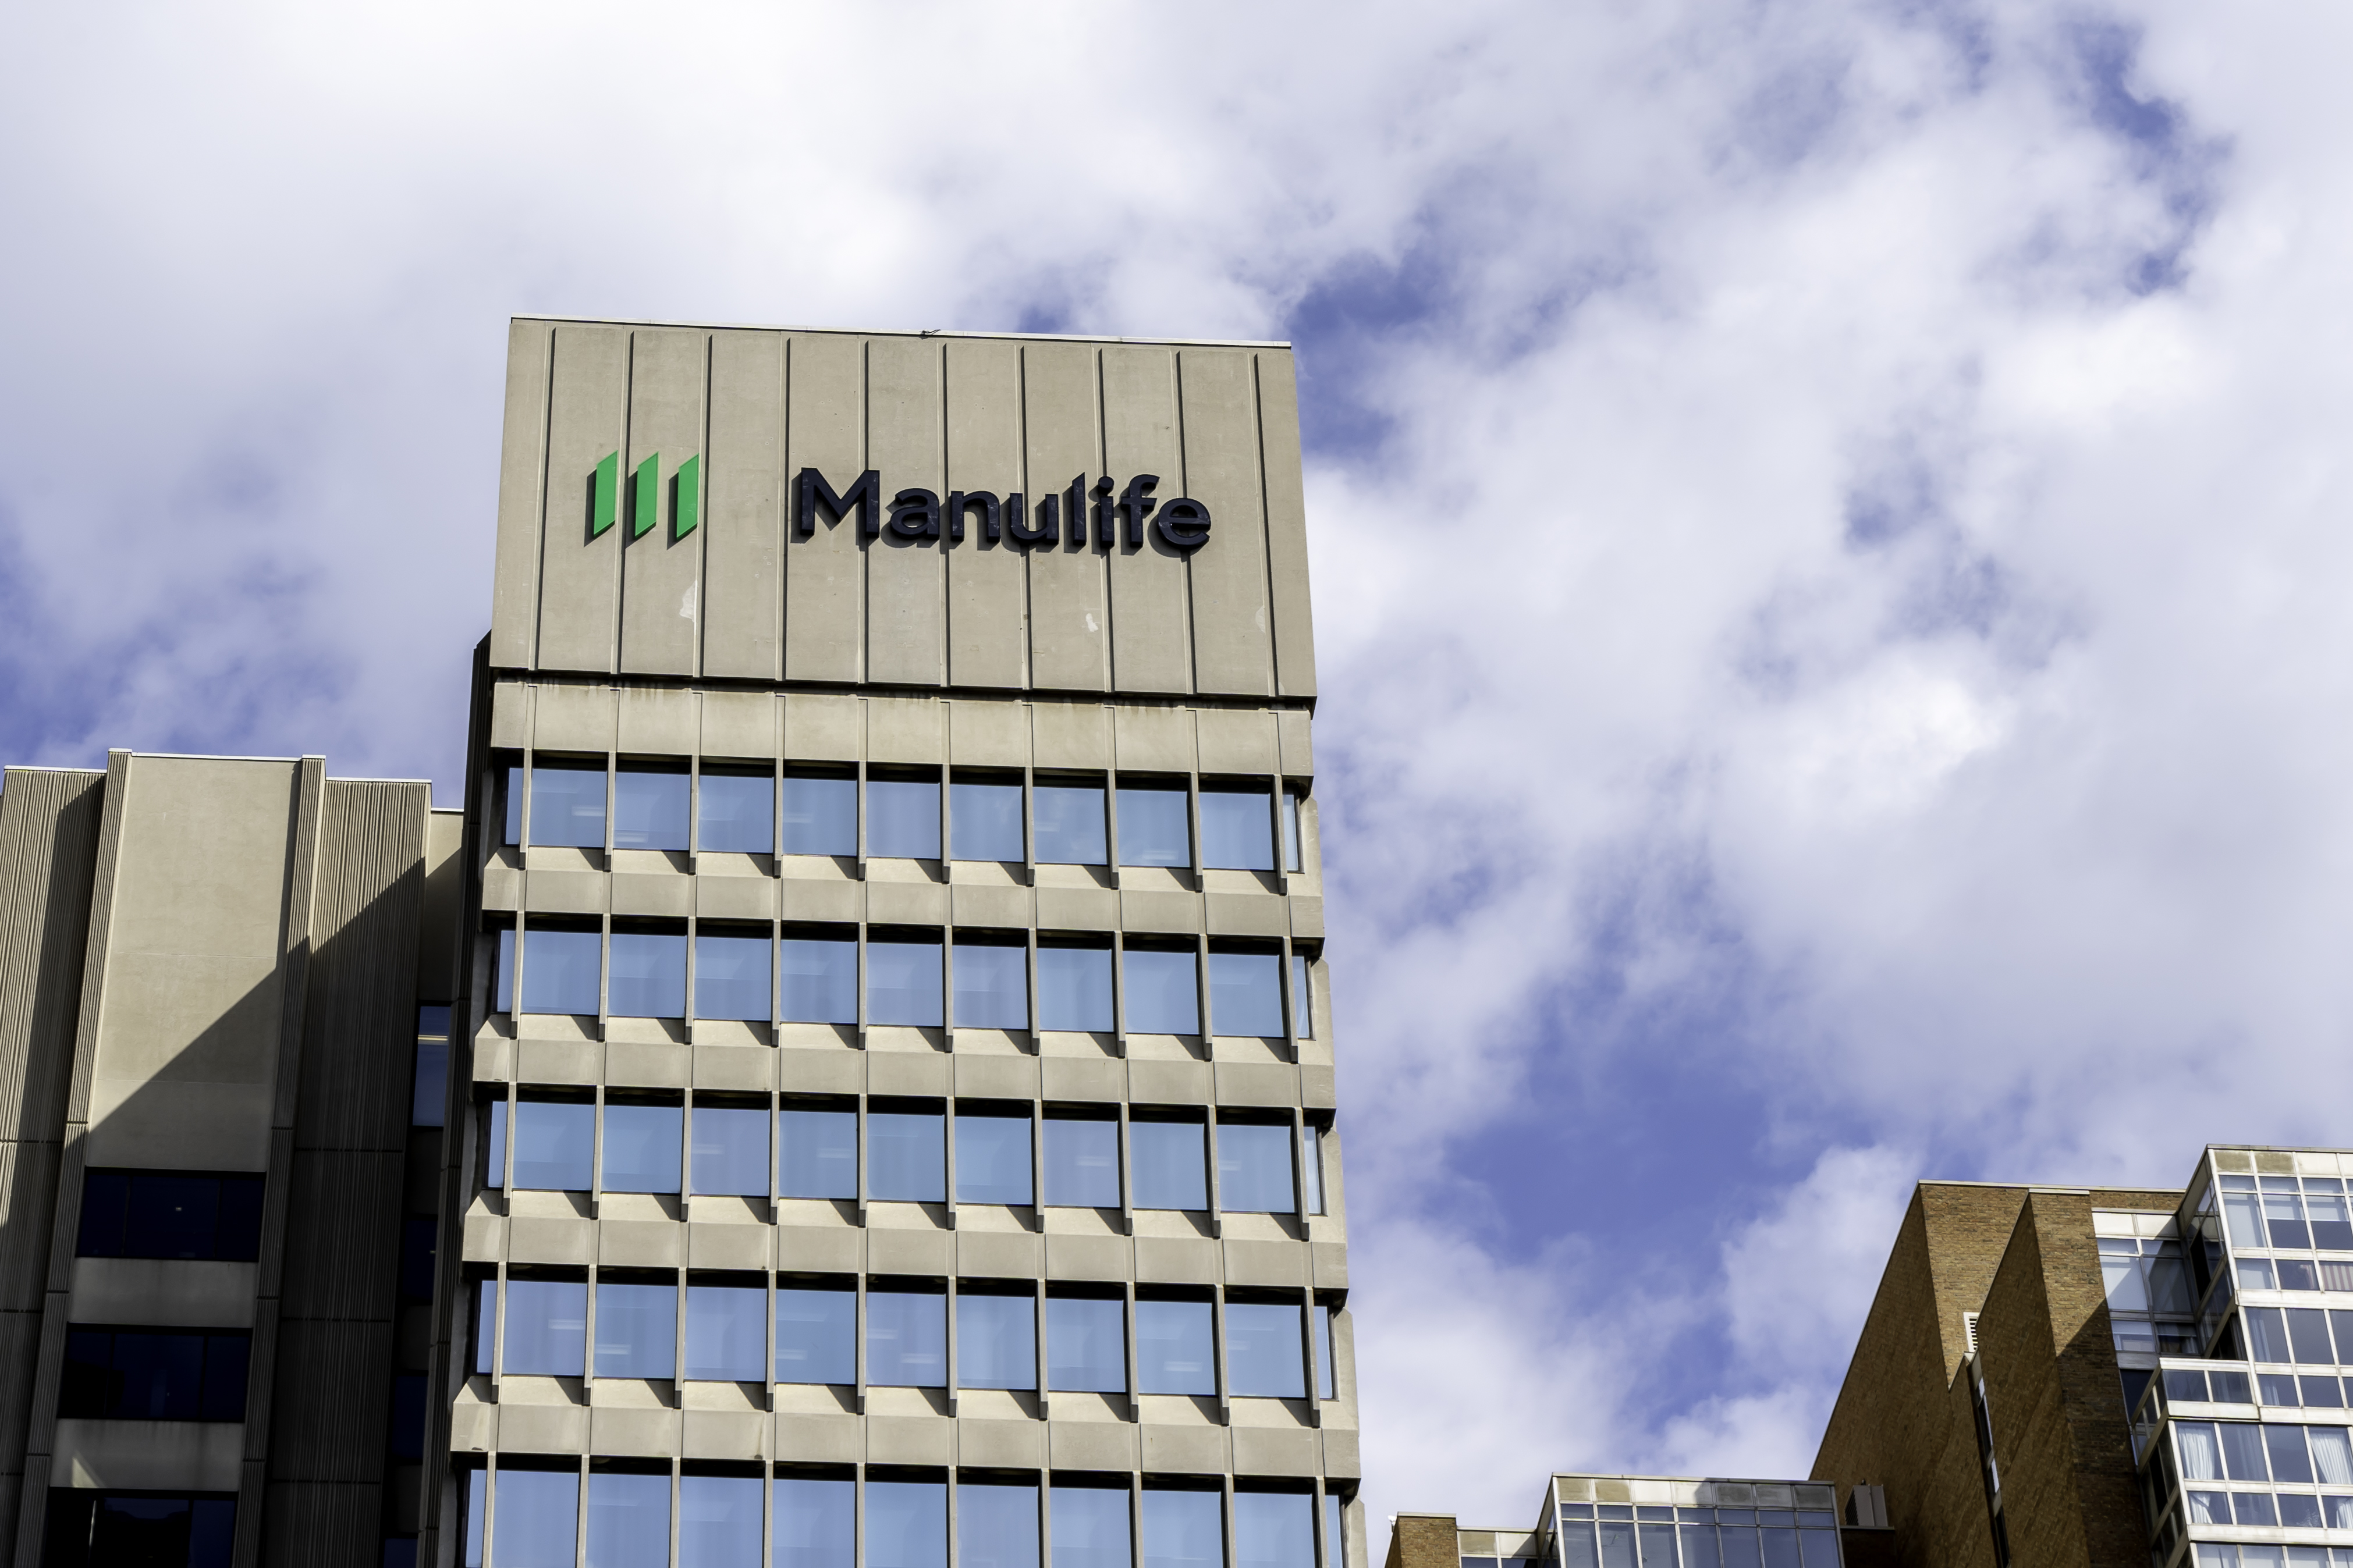 Manulife encourages 'acts of kindness' by workers